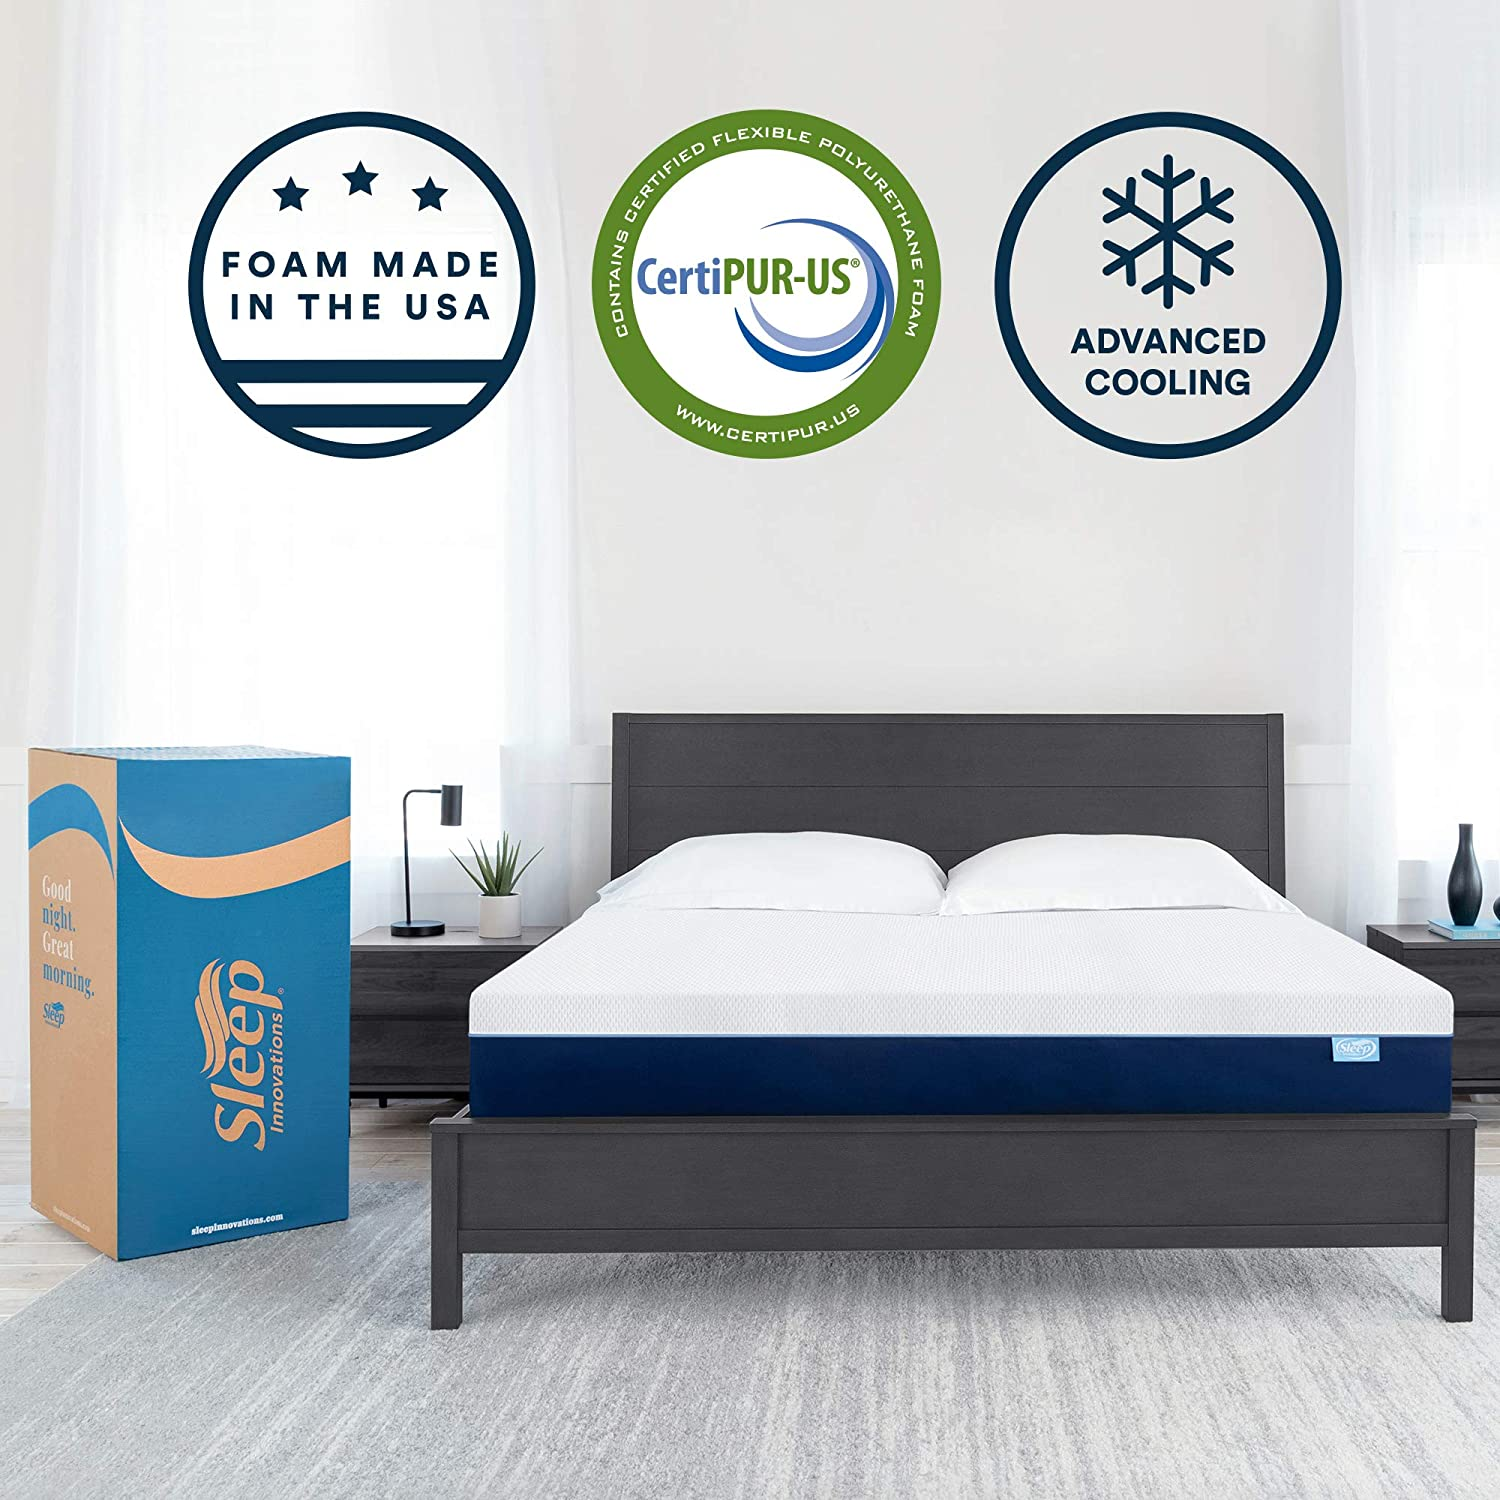 Top 10 Best Memory Foam Mattress (2020 Review & Buying Guide) 4